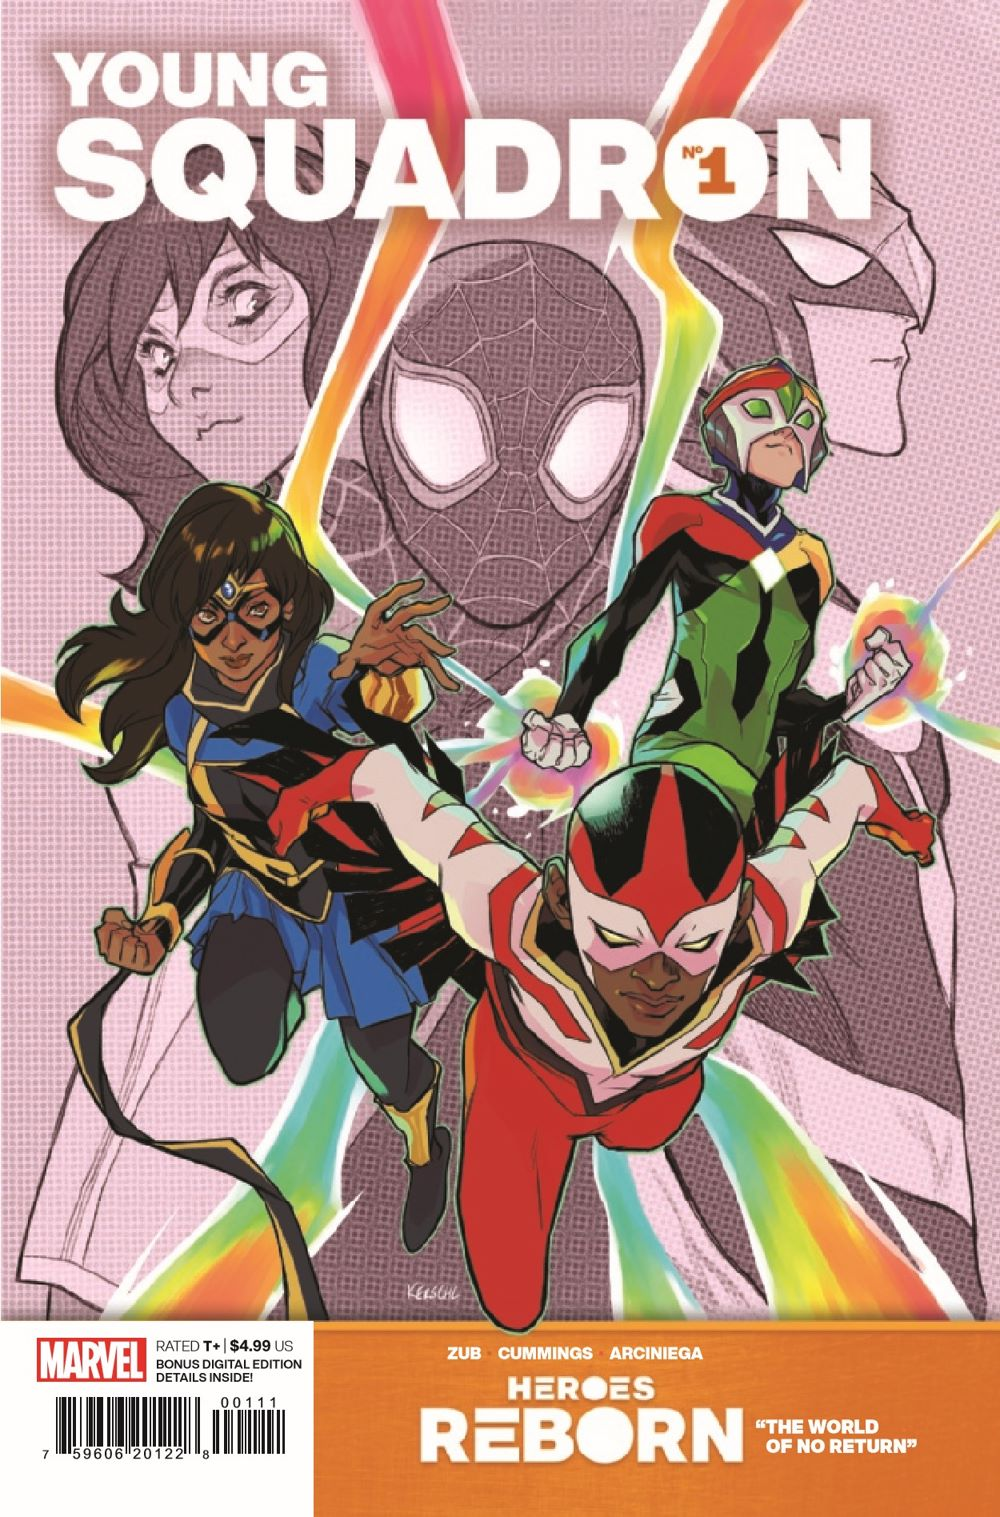 HRYOUNGSQ2021001_Preview-1 ComicList Previews: HEROES REBORN YOUNG SQUADRON #1